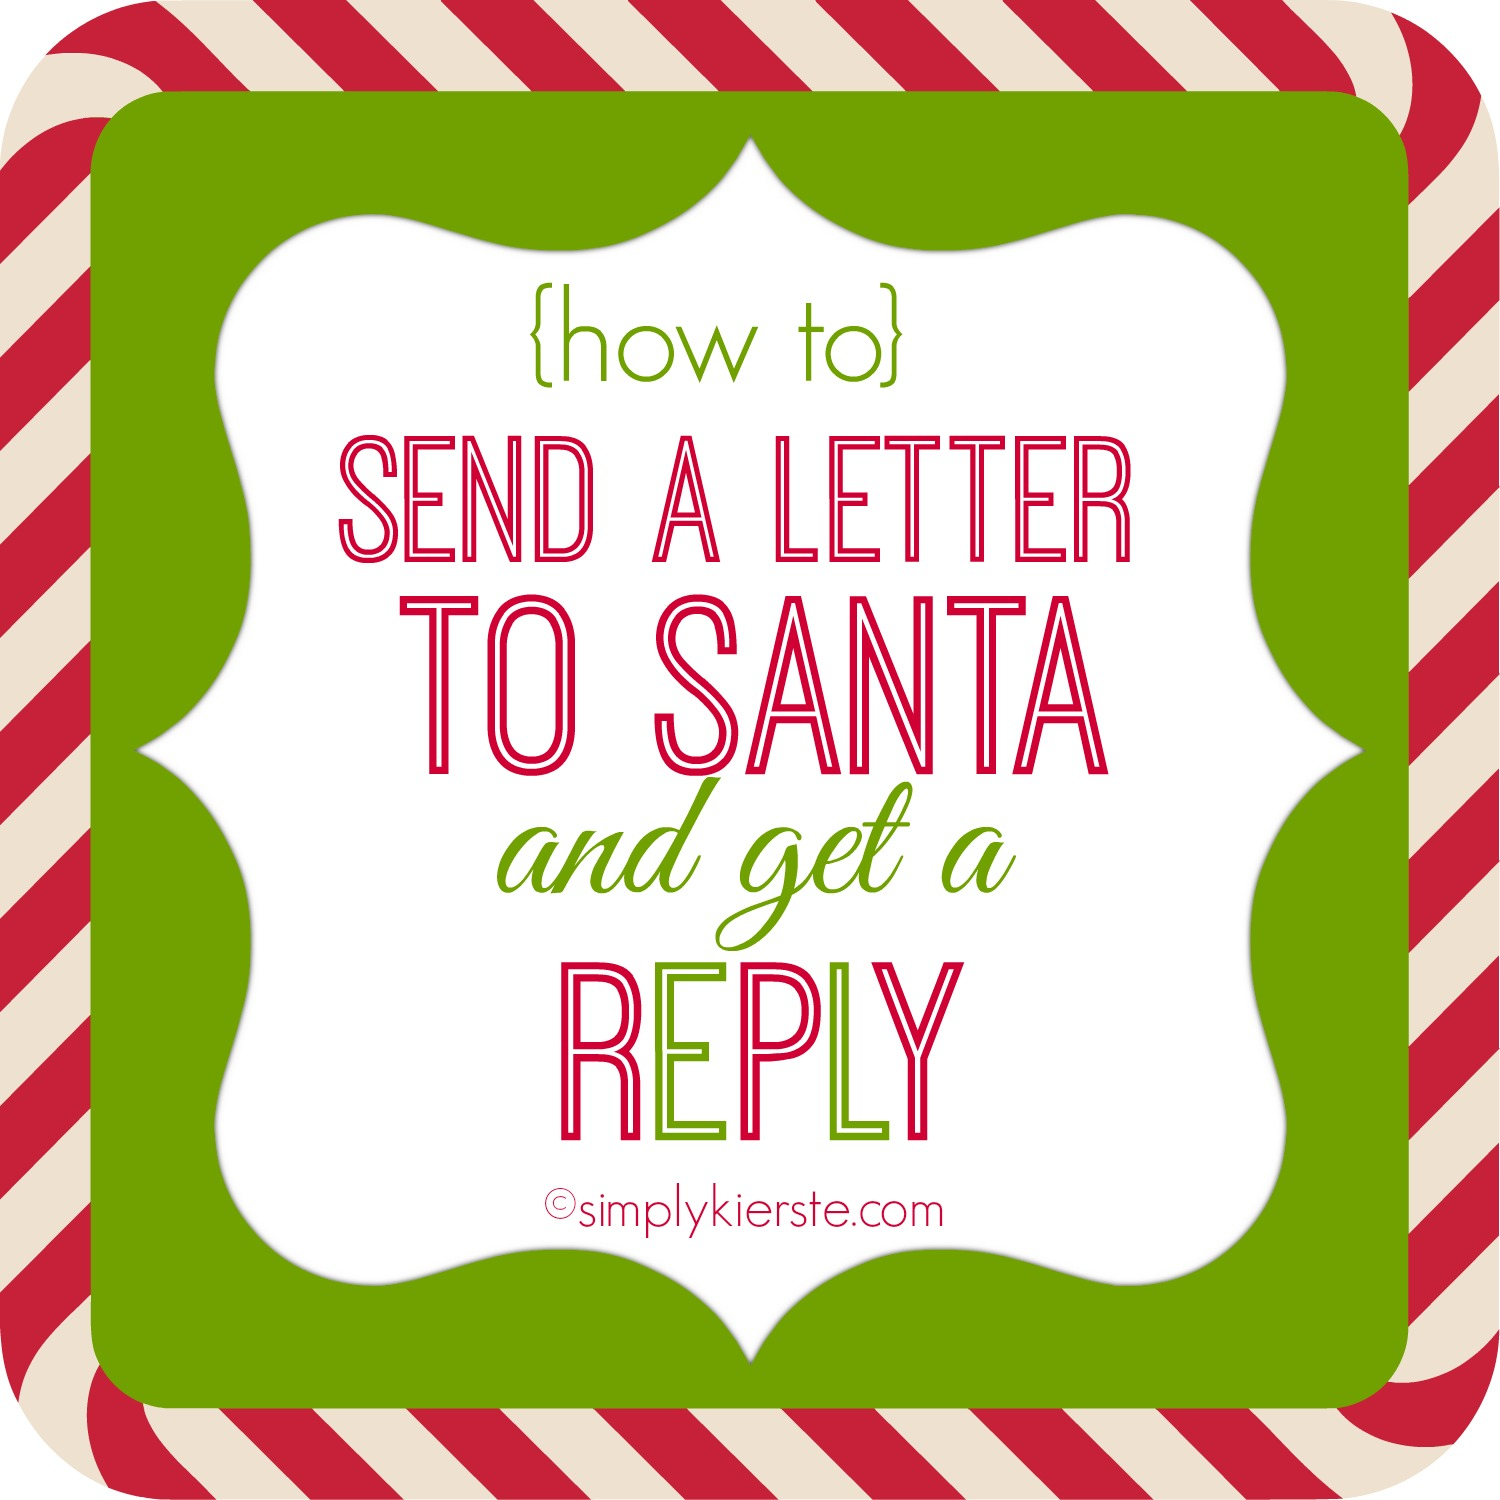 How to Send Letters to Santa and Get a Reply | simplykierste.com